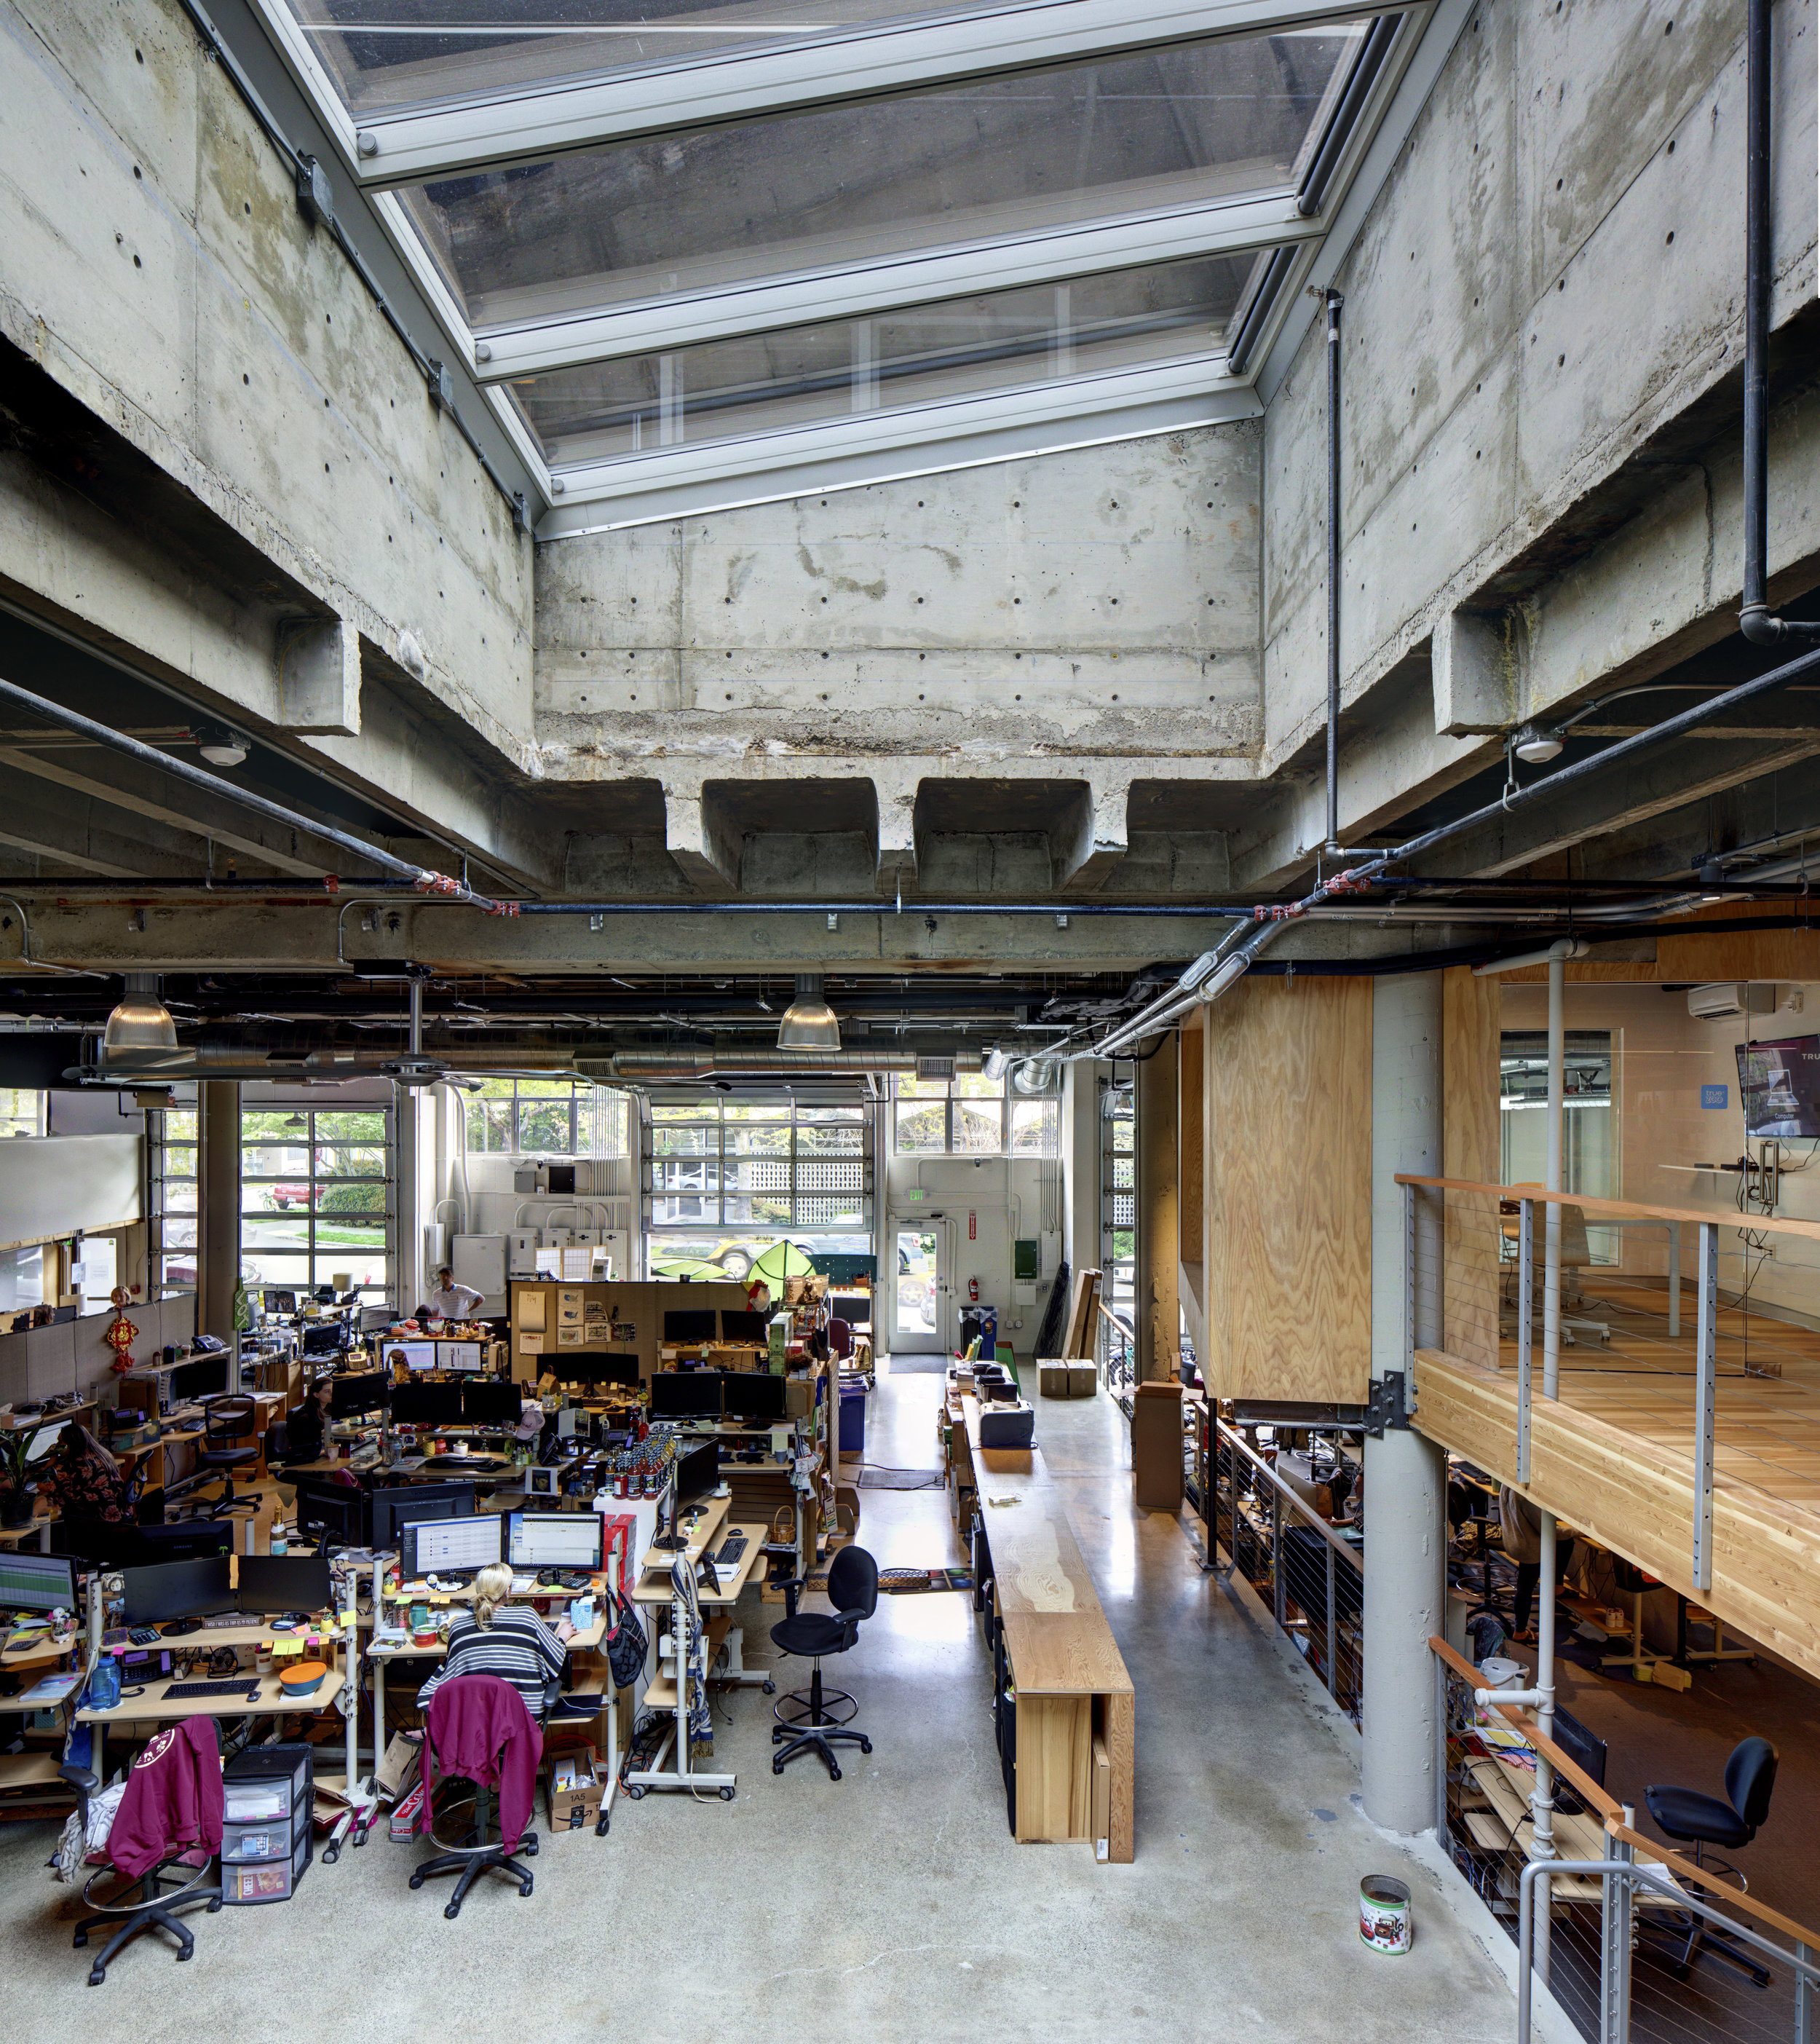 This headquarters for a beverage lifestyle accessories designer and distributor required the transformation of industrial concrete warehouse space in central Seattle in to a thriving, people-centered workplace.